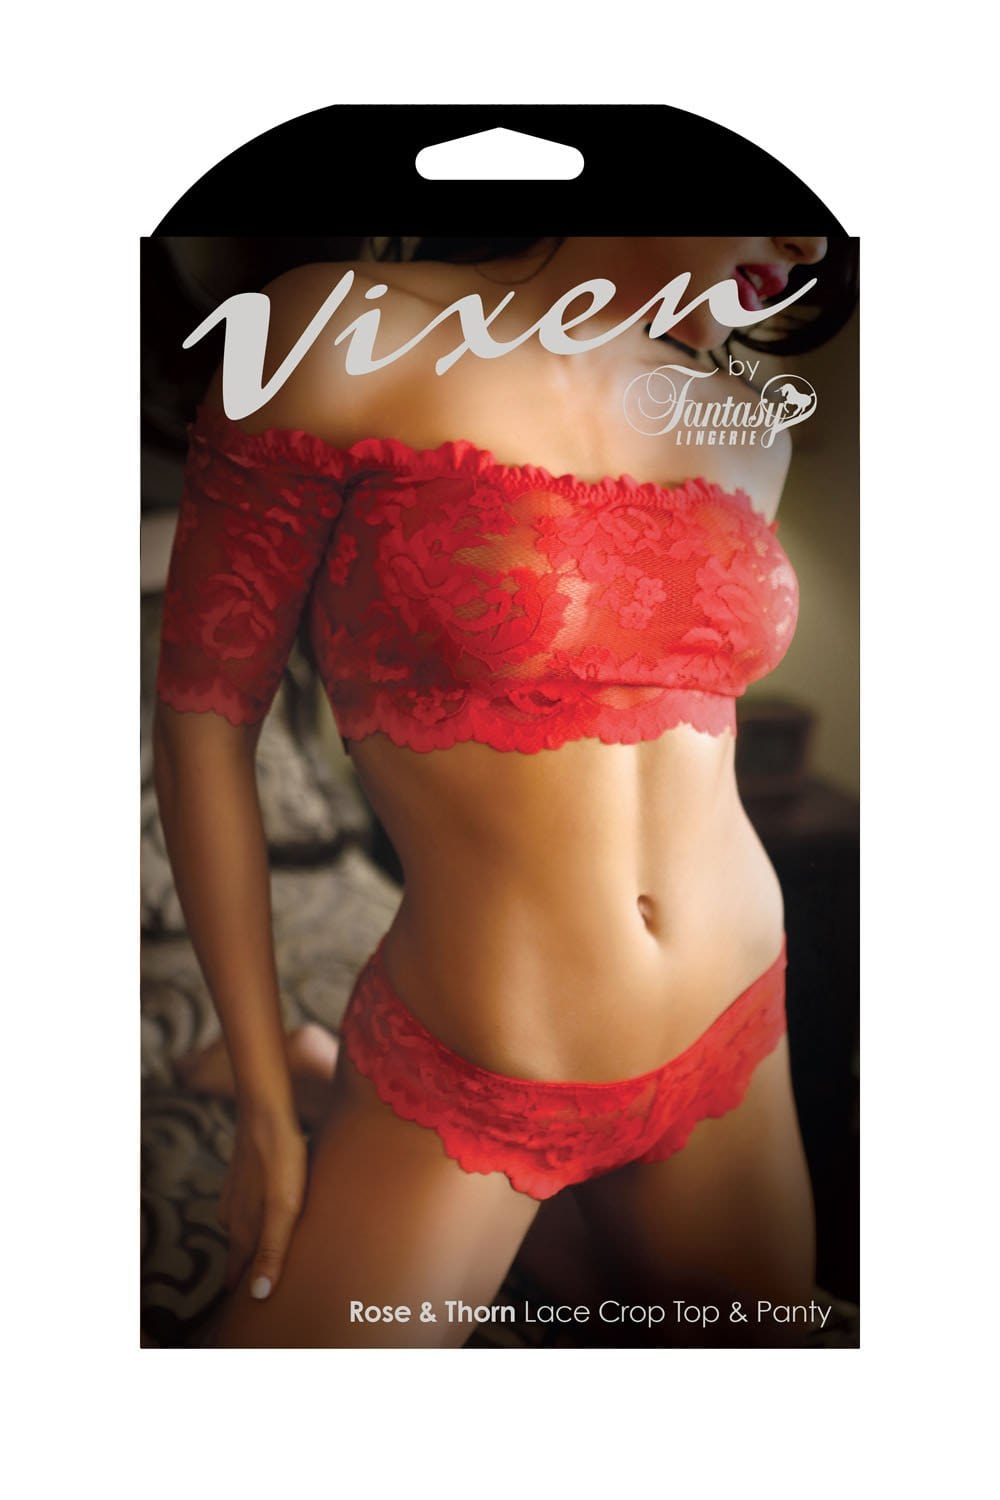 rose thorn lace crop top panty queen size